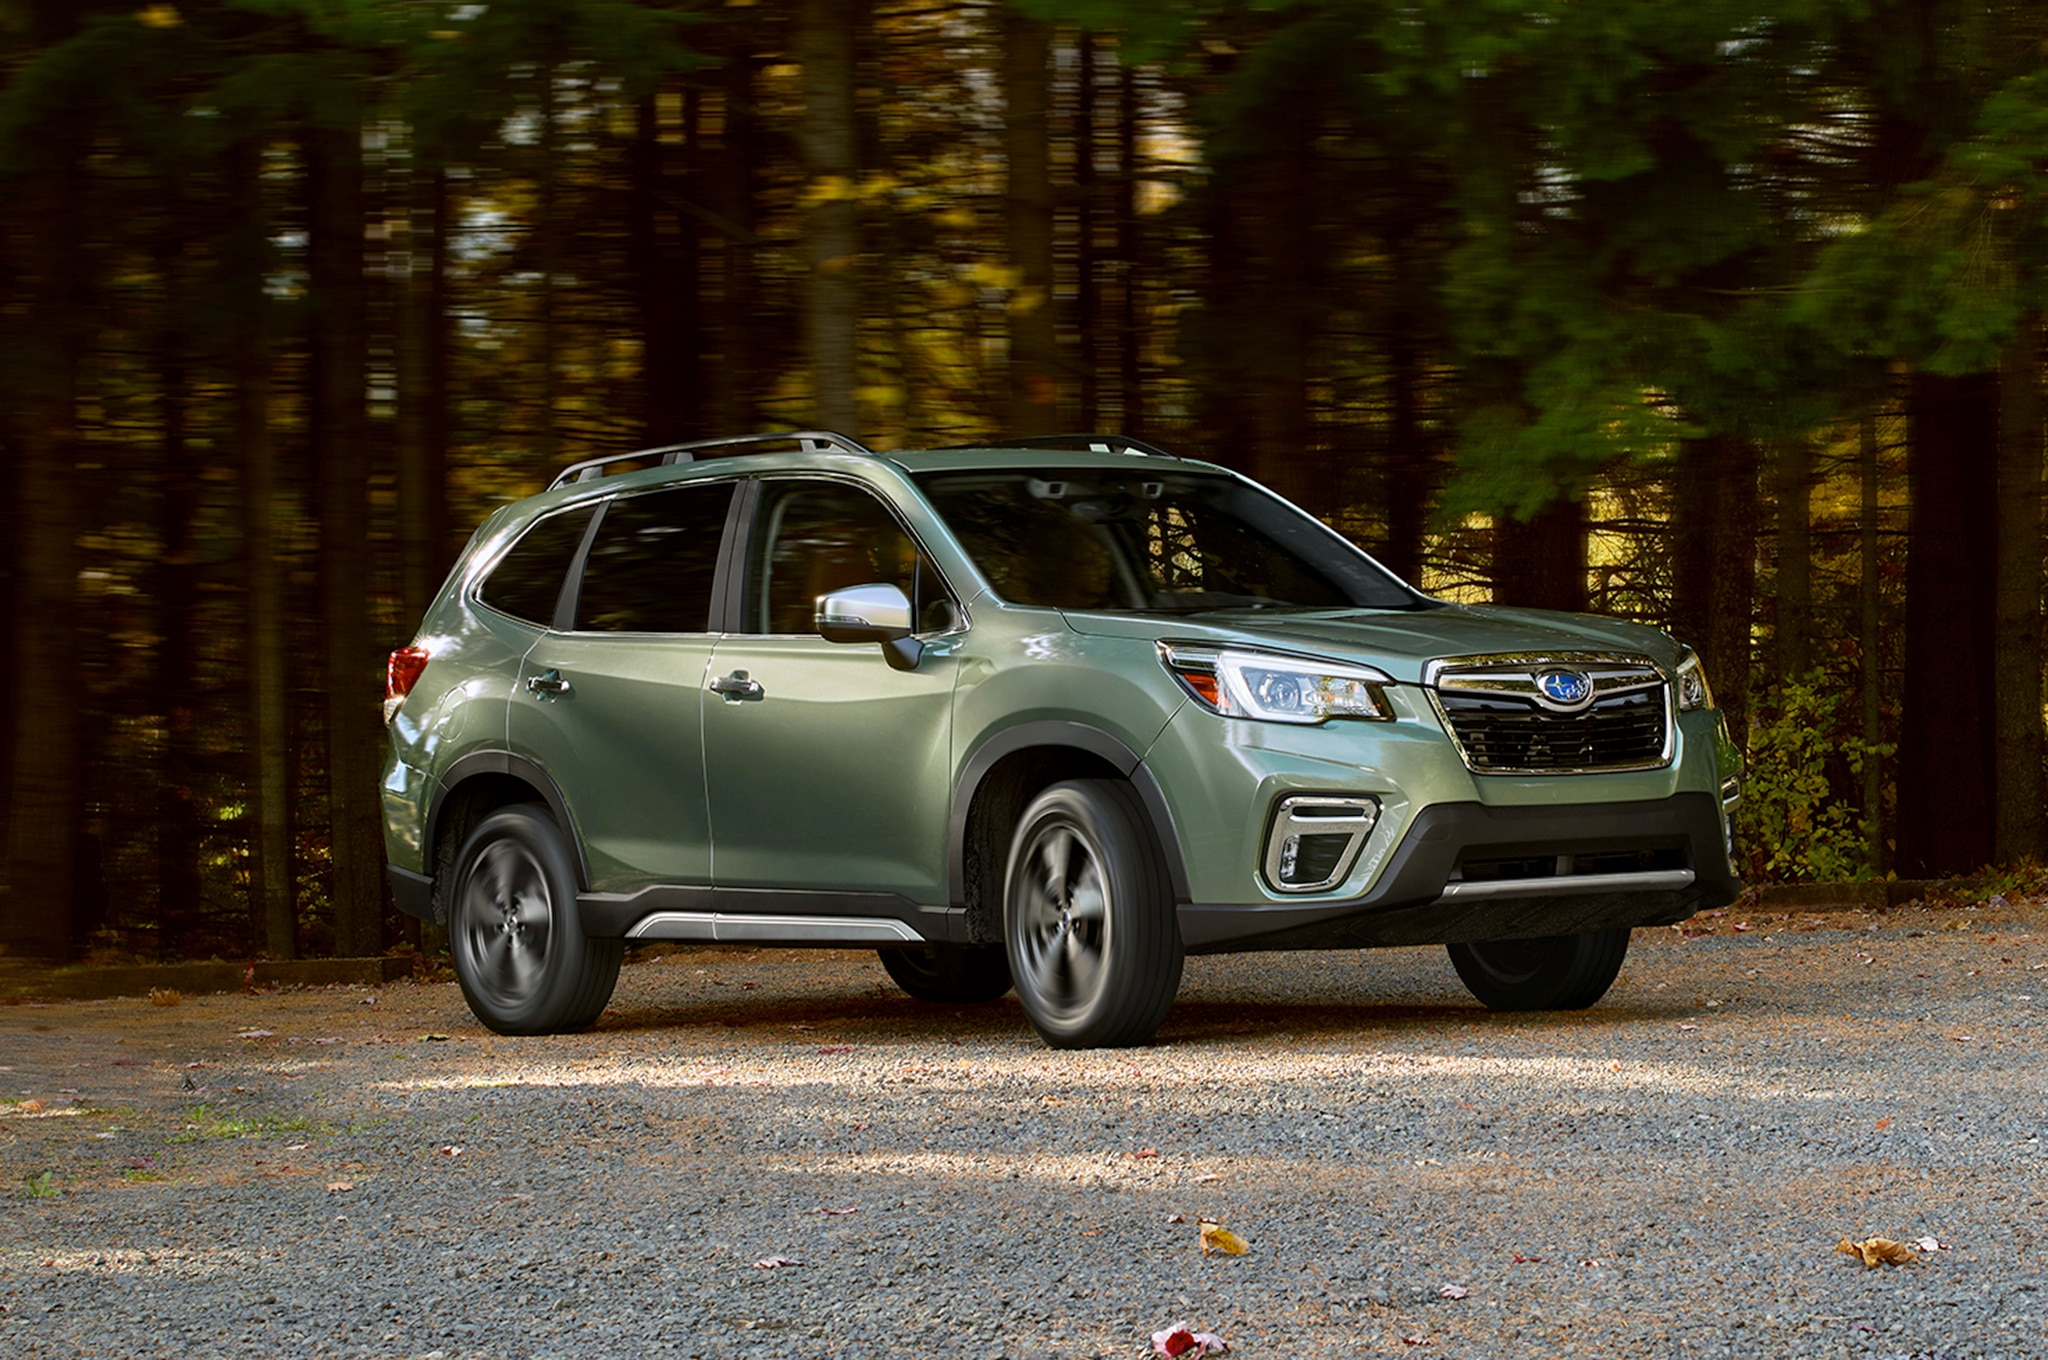 2019 Subaru Forester Front Three Quarter In Motion 04